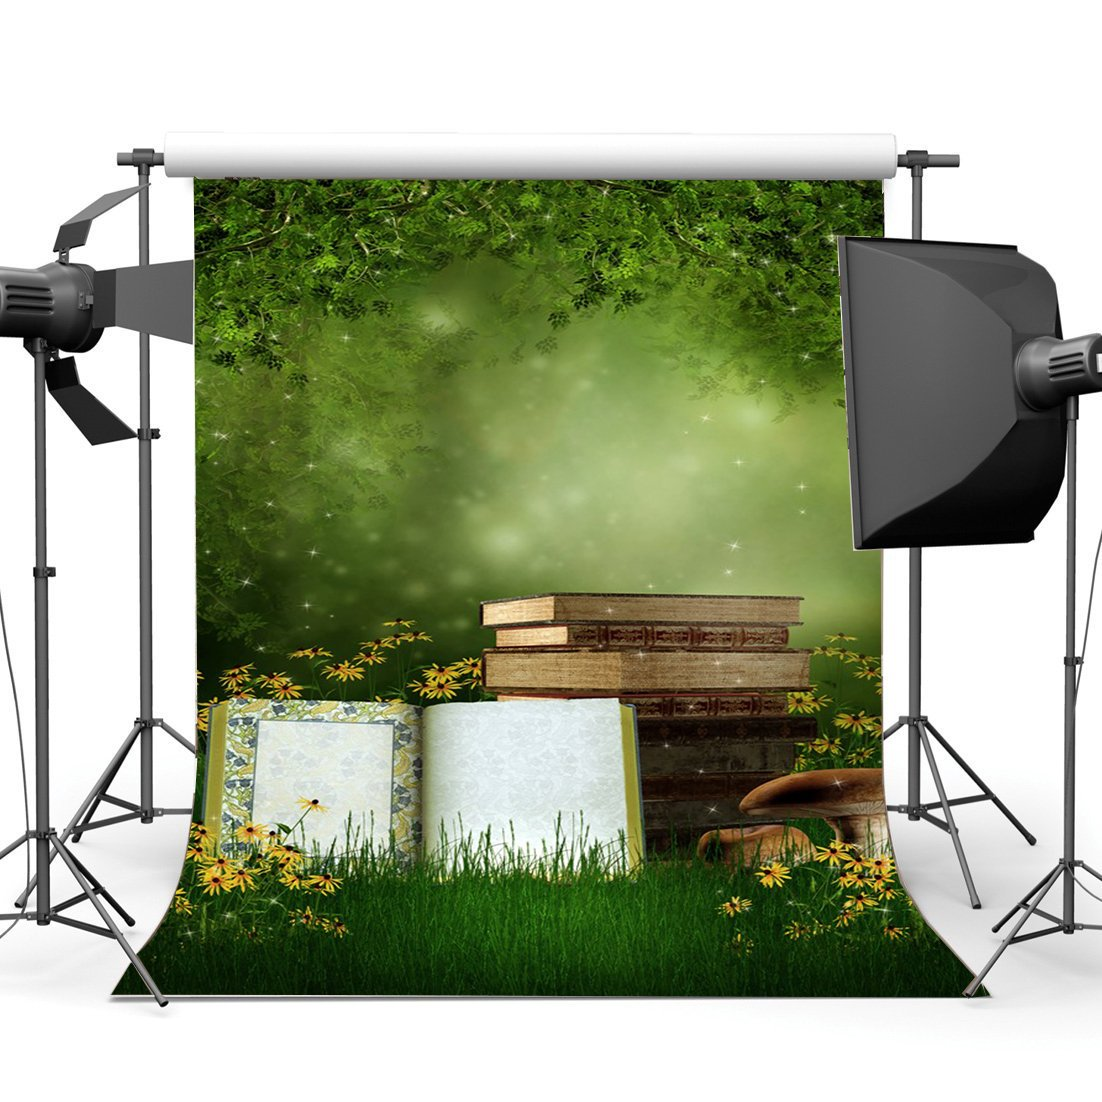 Photography Backdrop Dreamy World Fairy Tale Jungle Forest Blooming Flowers Grass Field Bokeh Magic Background-in Photo Studio Accessories from Consumer Electronics